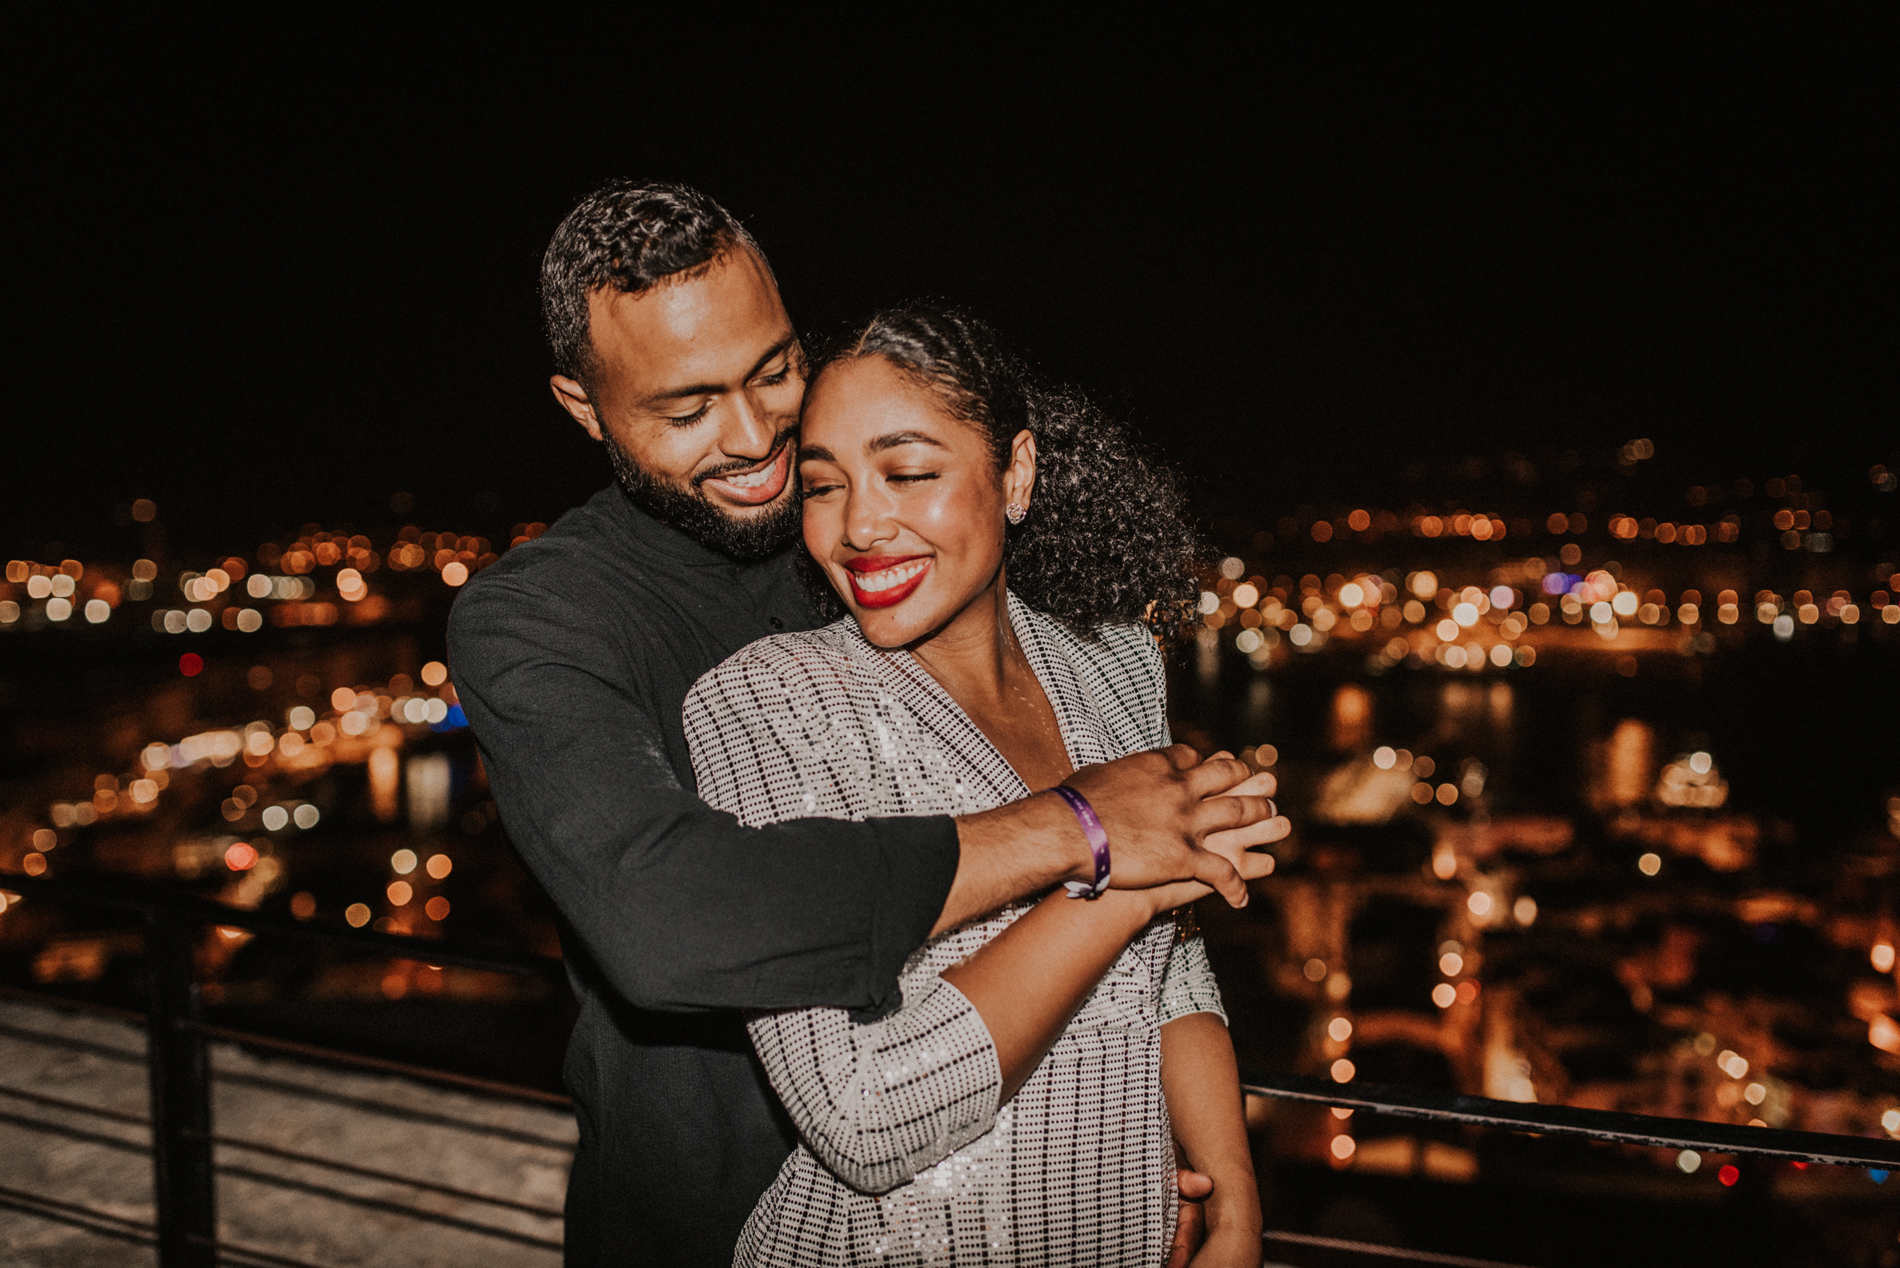 couple stands smiling in front of night time city lights